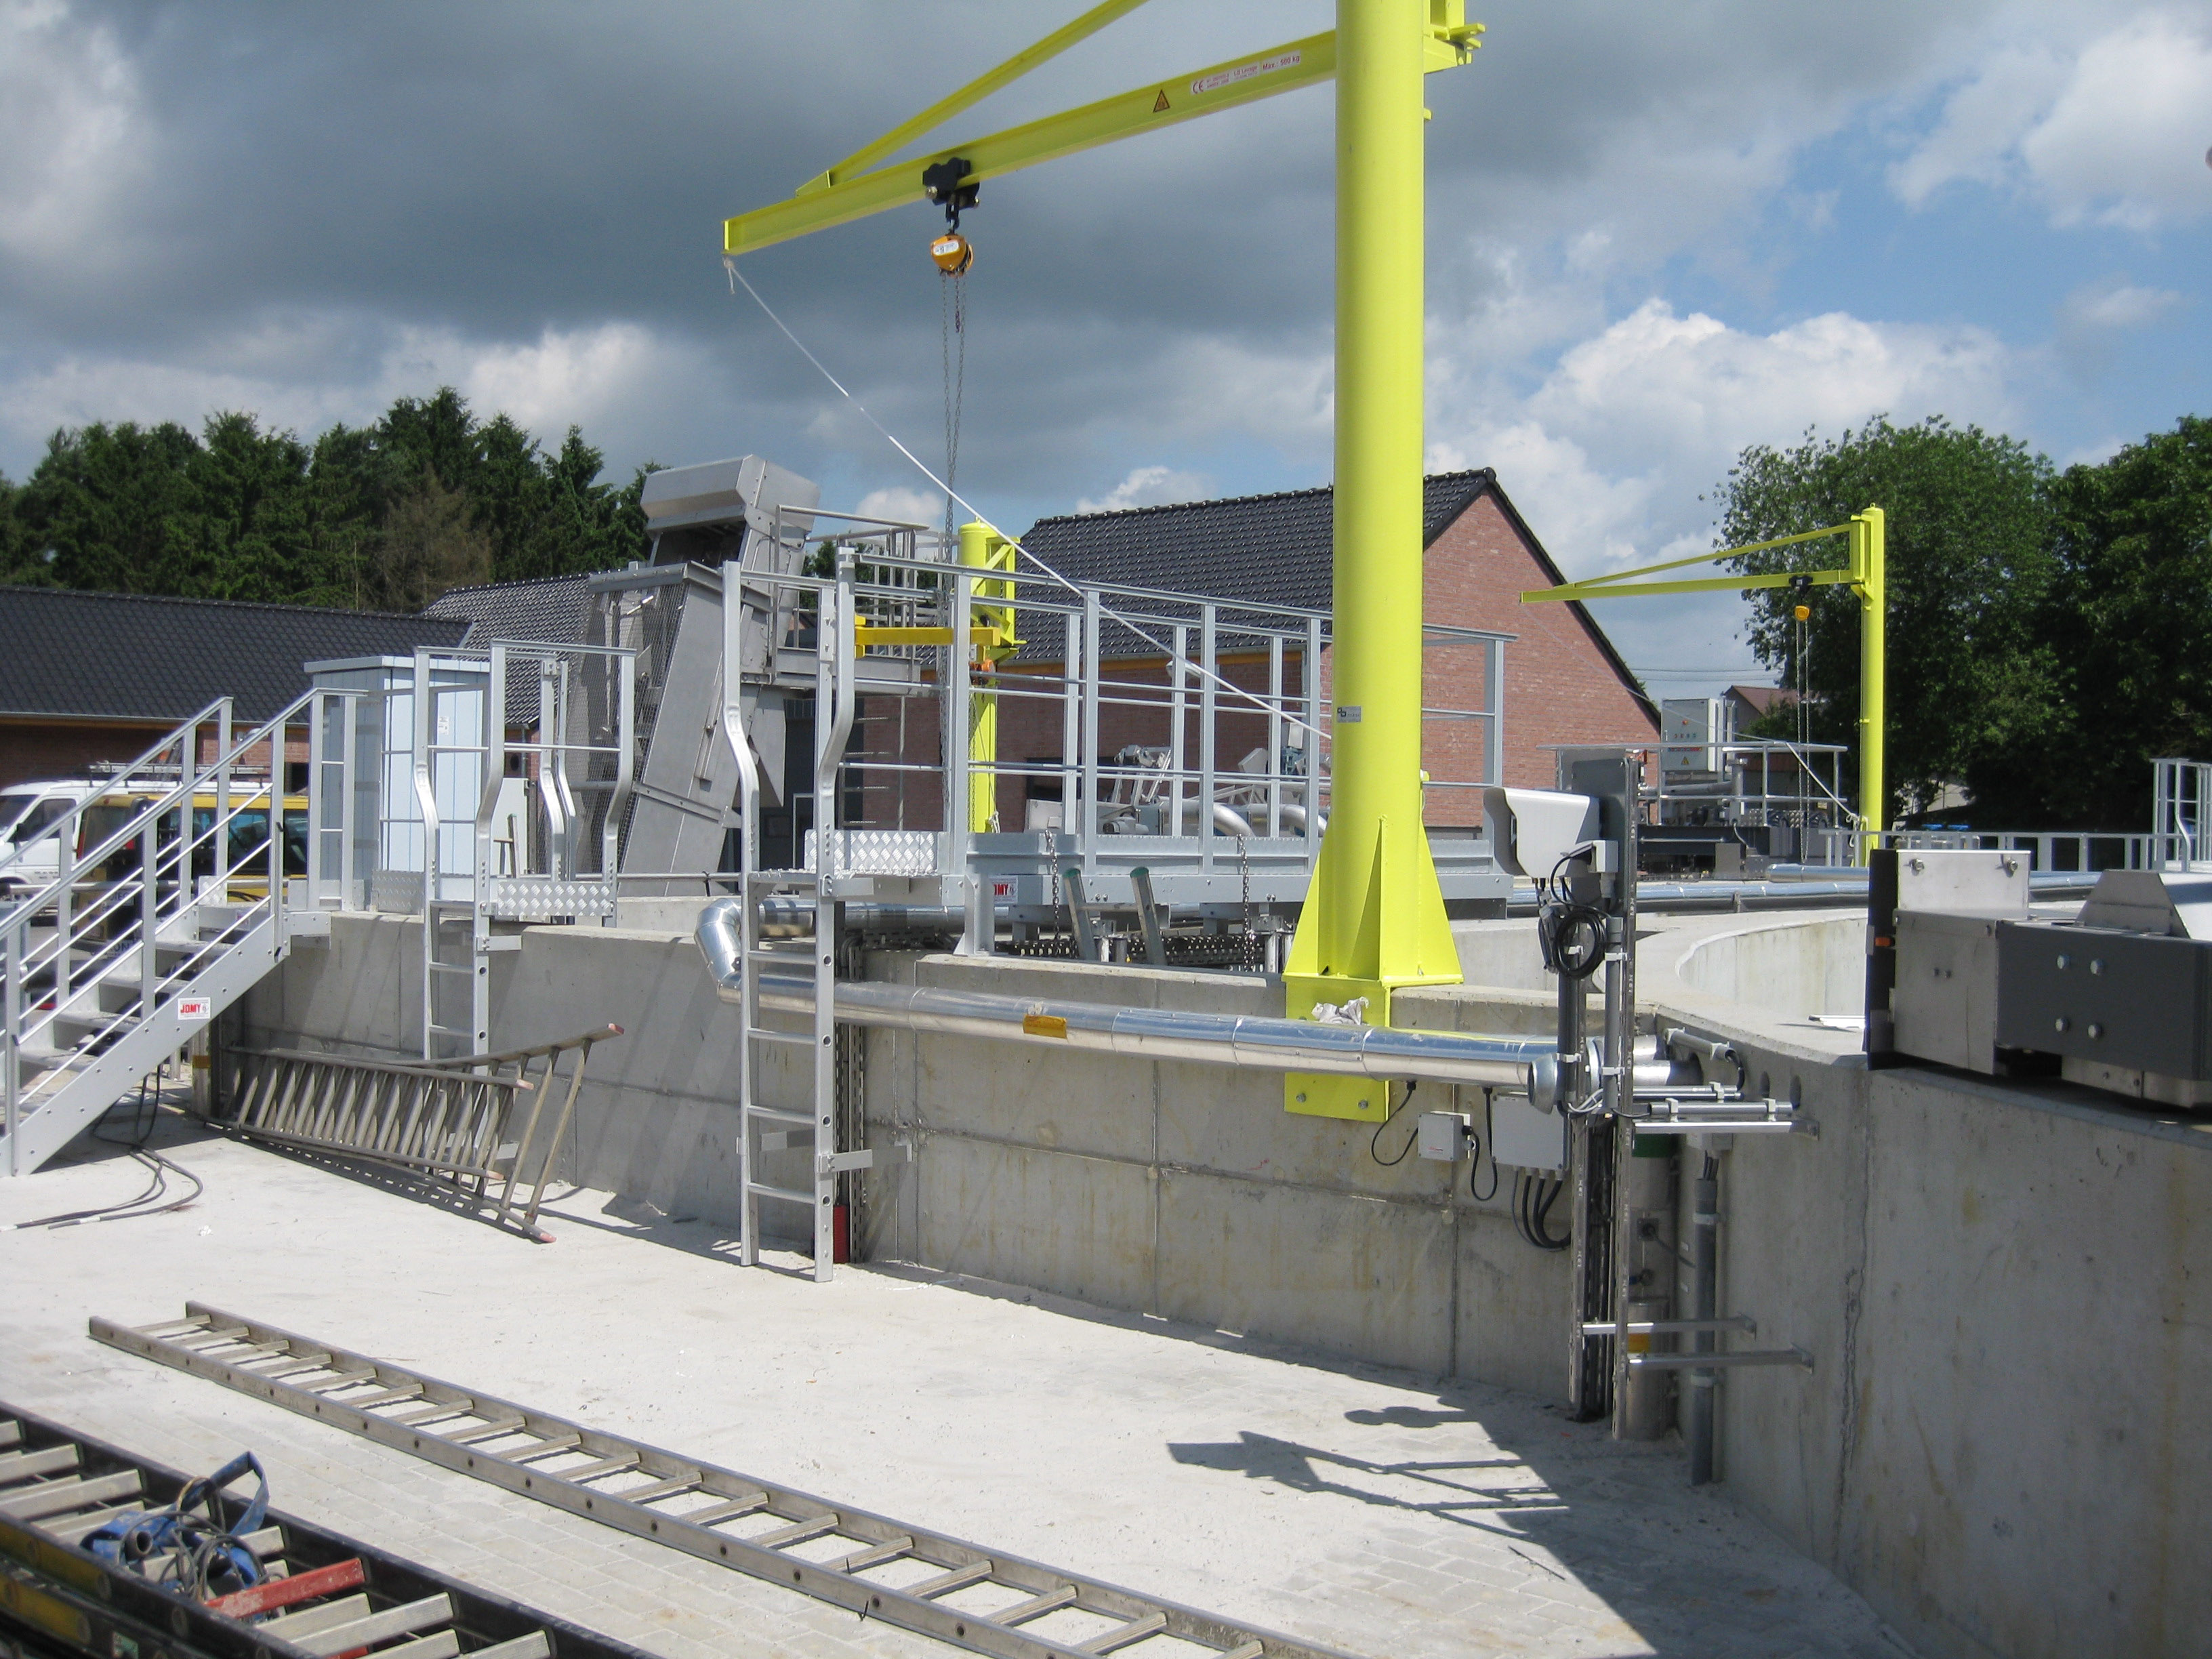 JOMY constructions in a water treatment plant